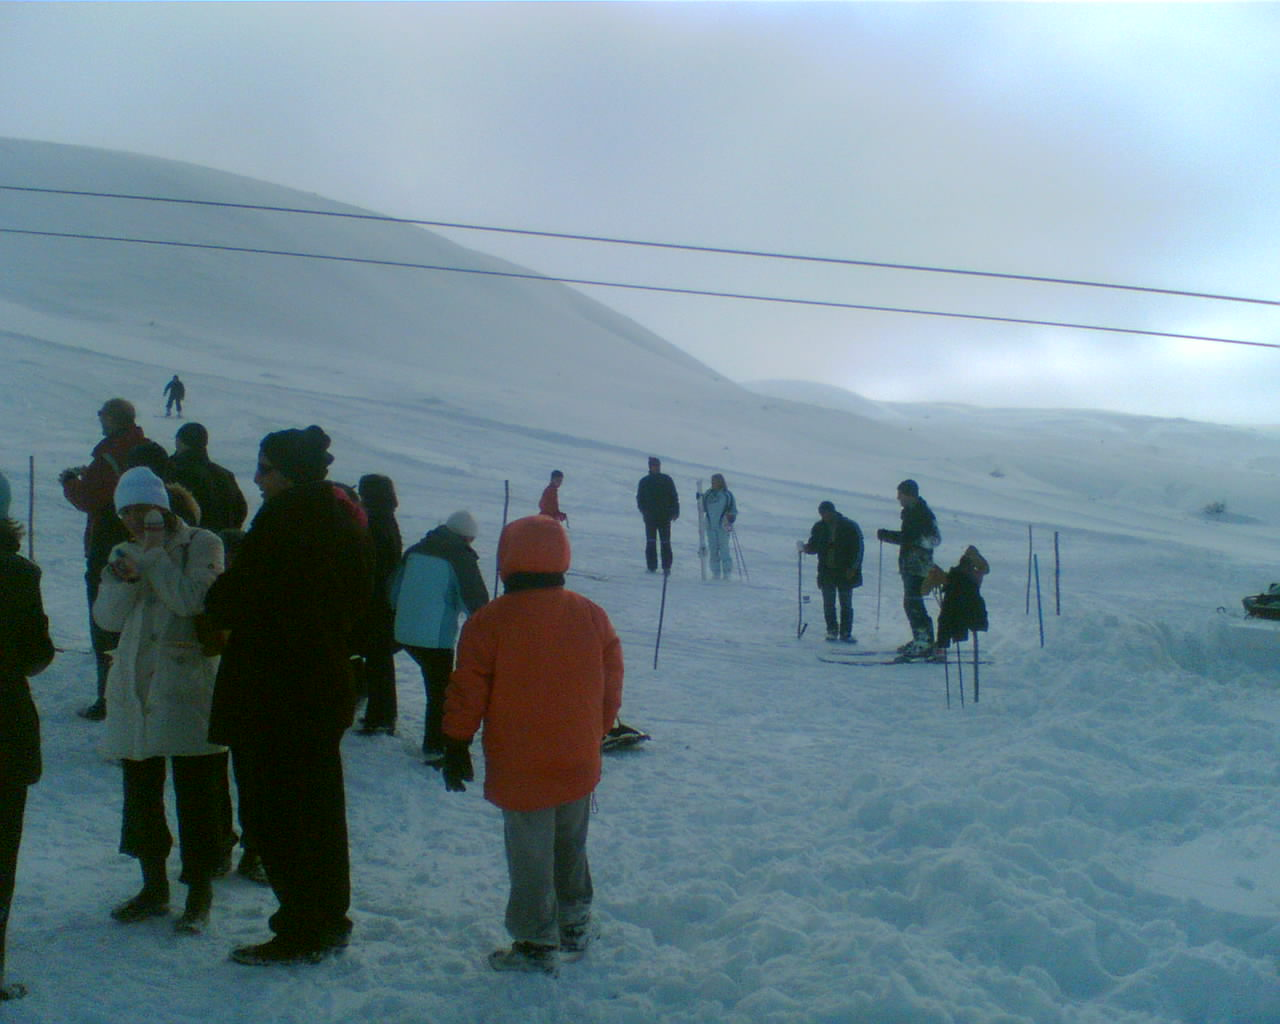 elazig hazar baba ski center 1280 x 1024